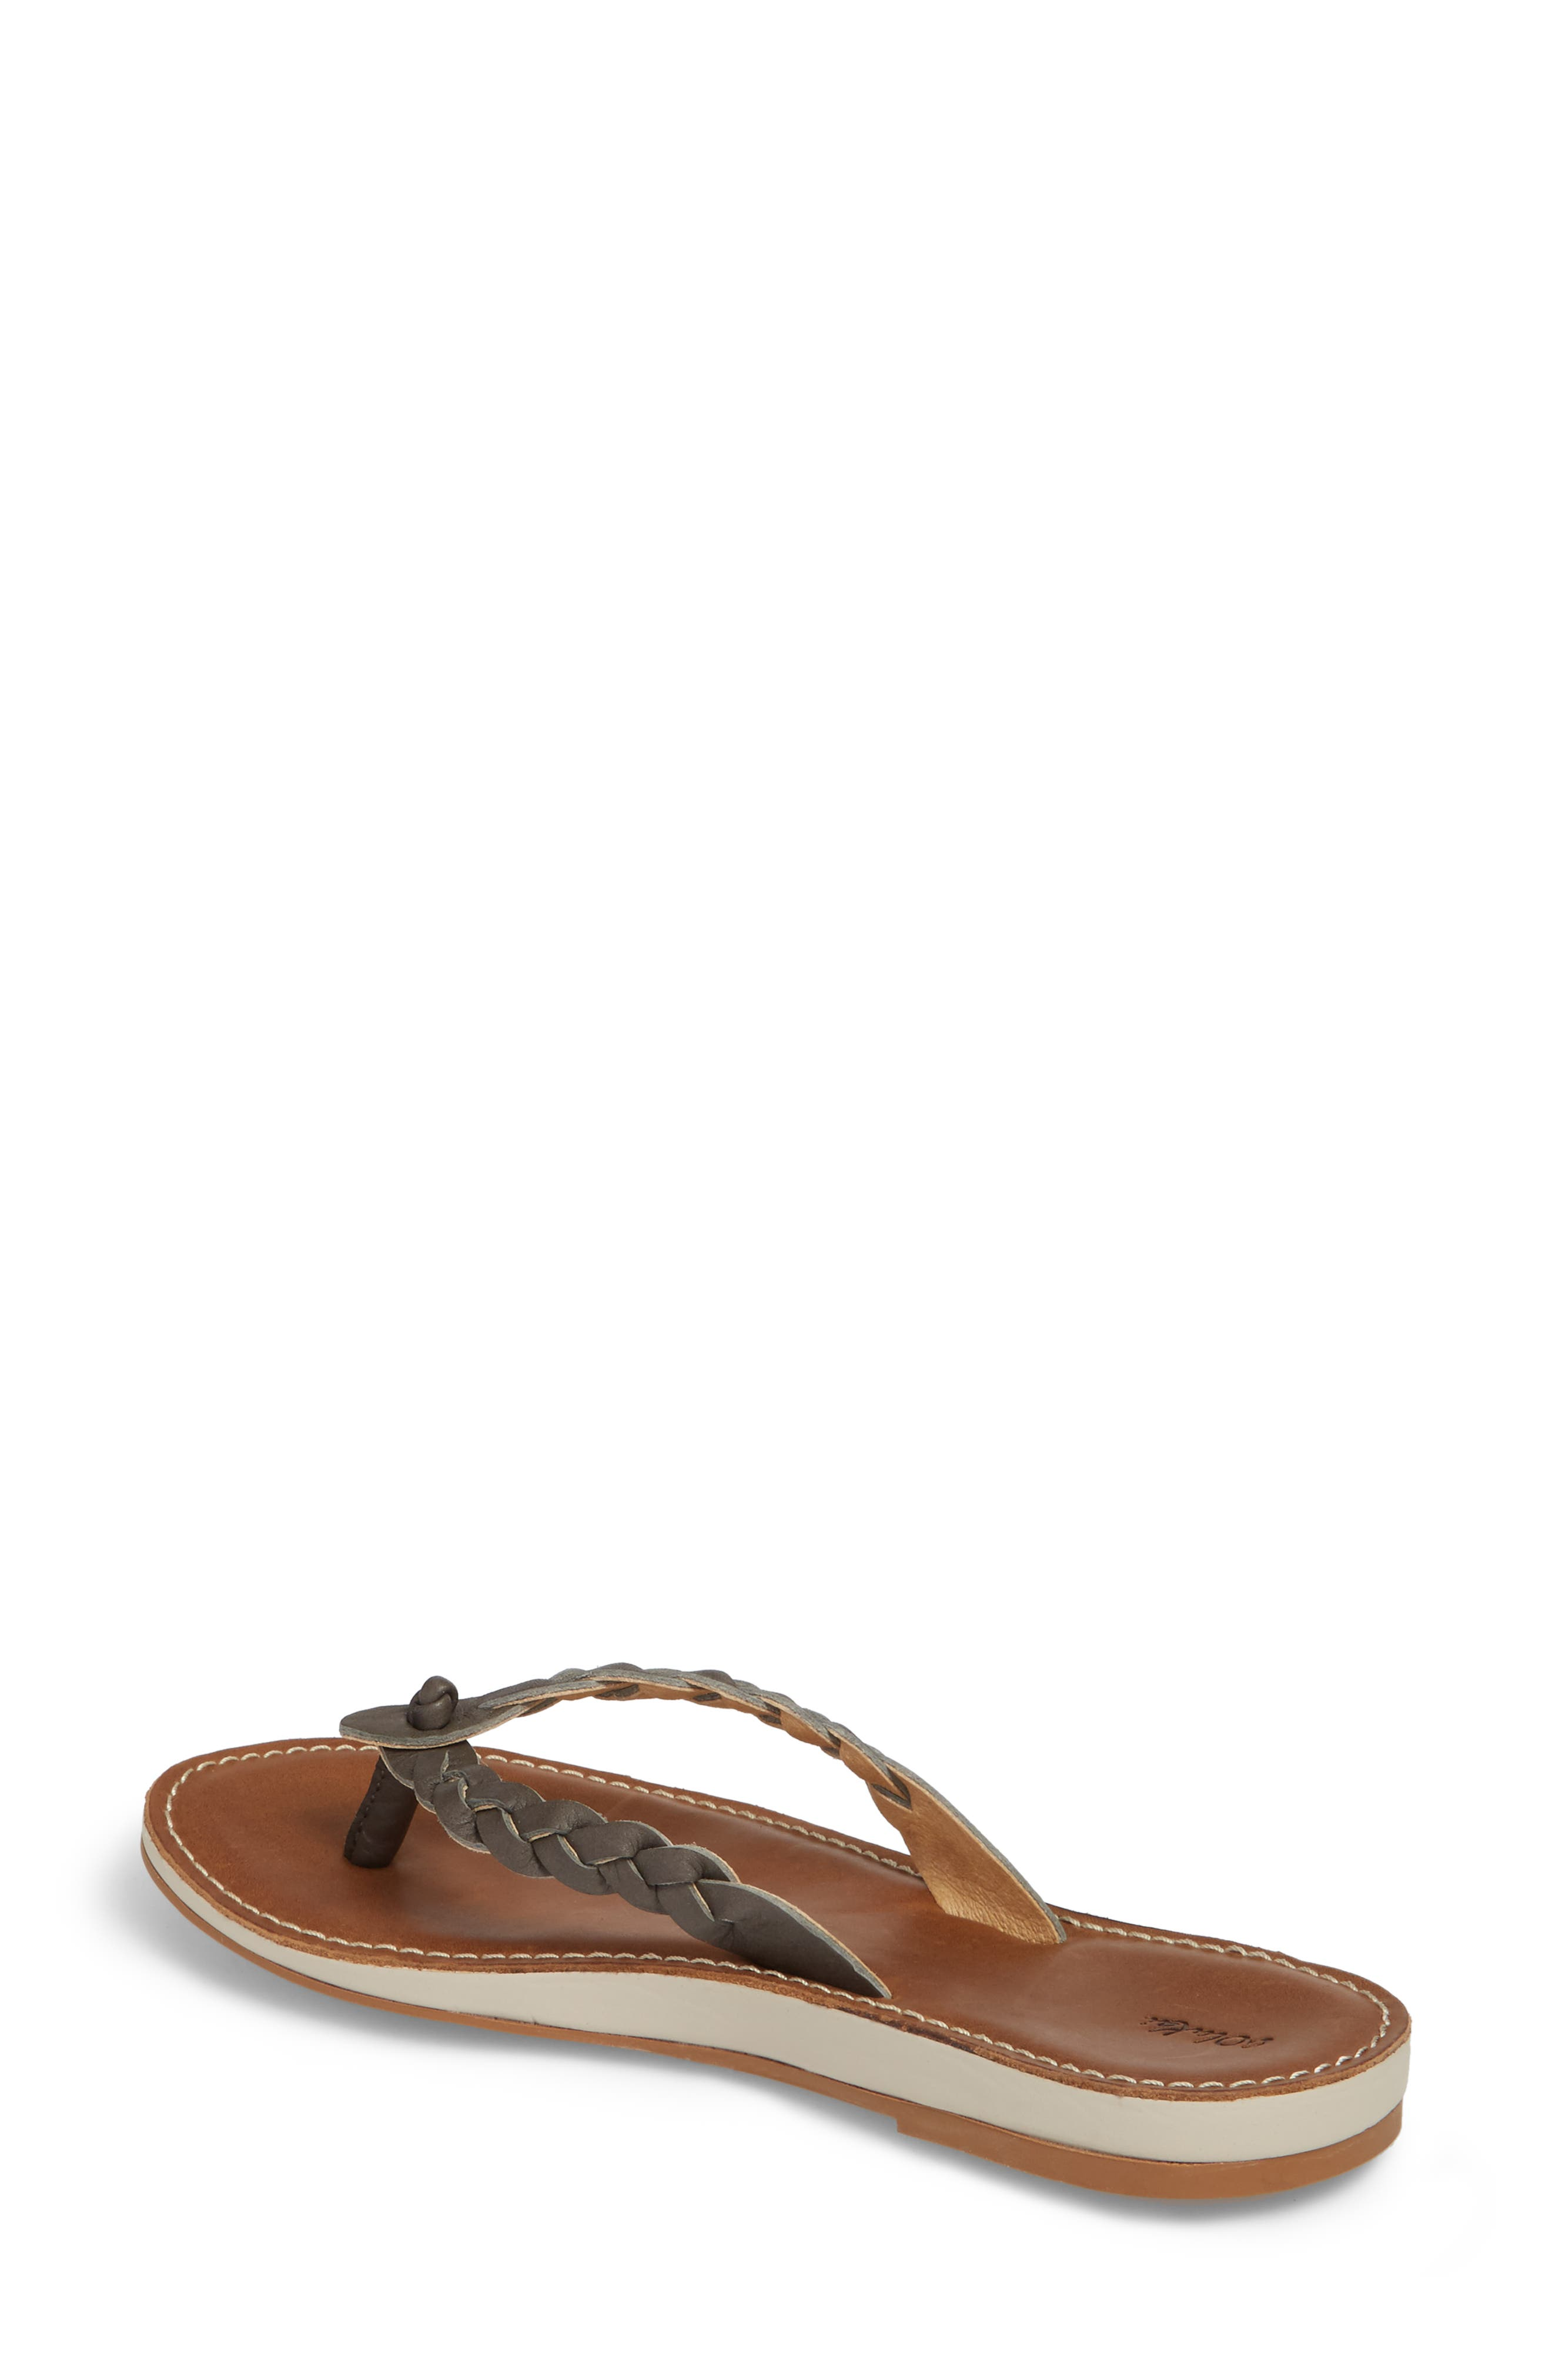 Kahiko Flip-Flop,                             Alternate thumbnail 2, color,                             SLATE/ TAN LEATHER